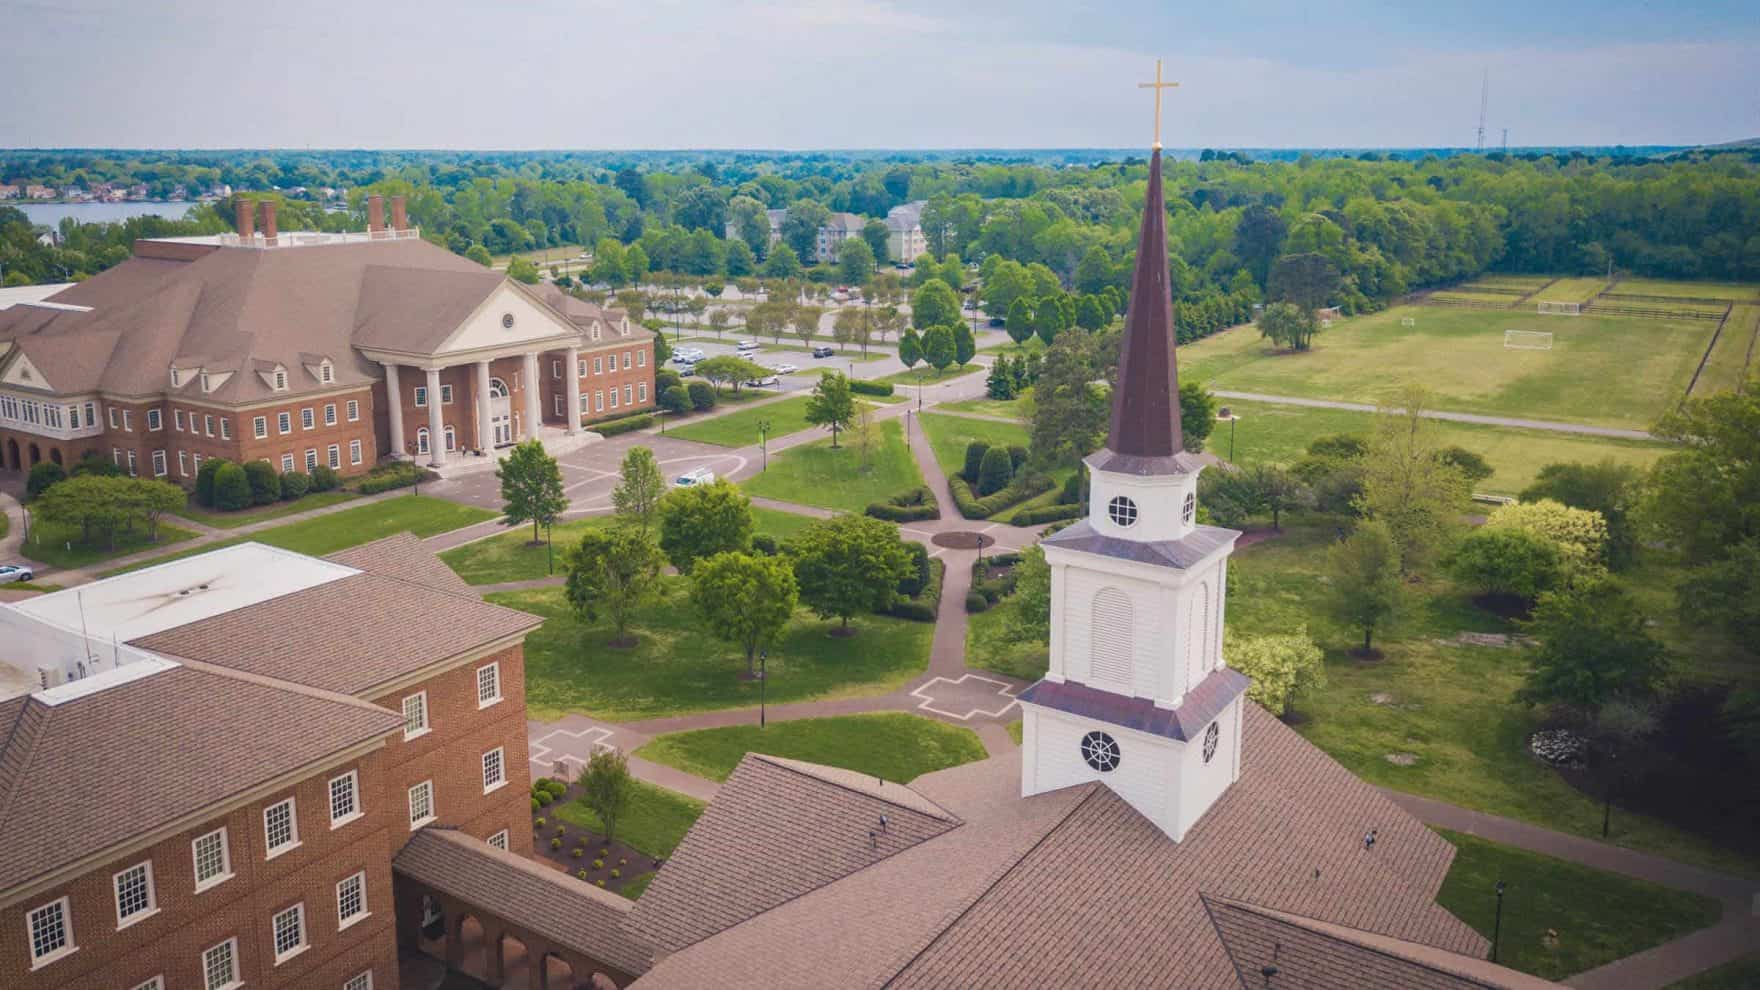 The beautiful Virginia Beach campus of Regent, a premier Christian university that is offering $4,000 Homeschool Scholarships.